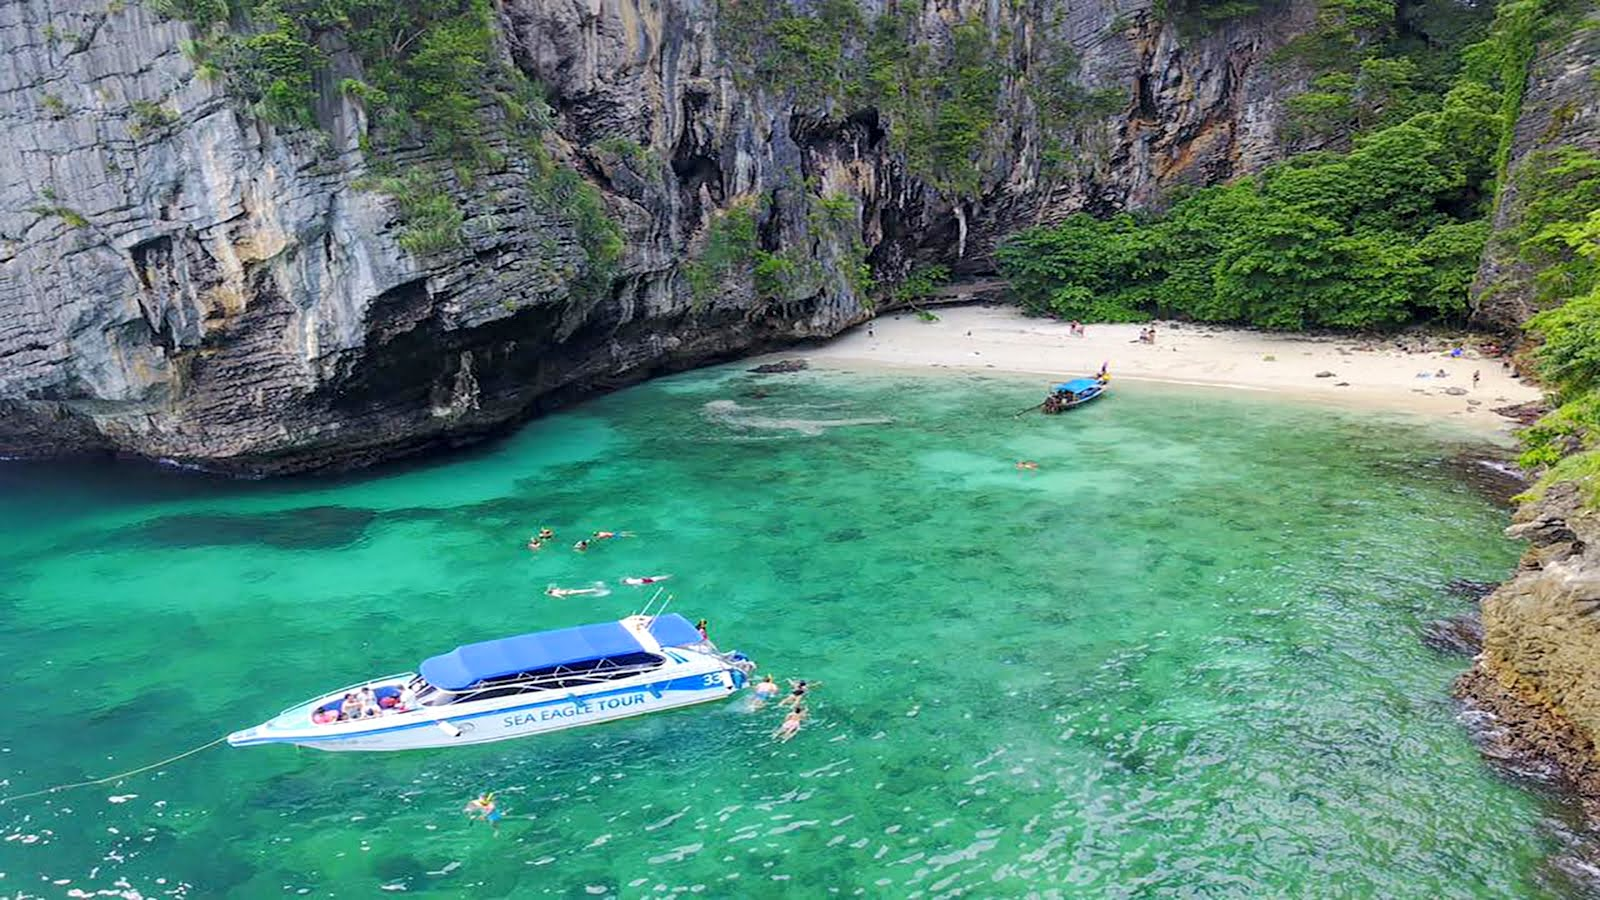 Phi Phi Island Speed Boat Tour by Sea Eagle